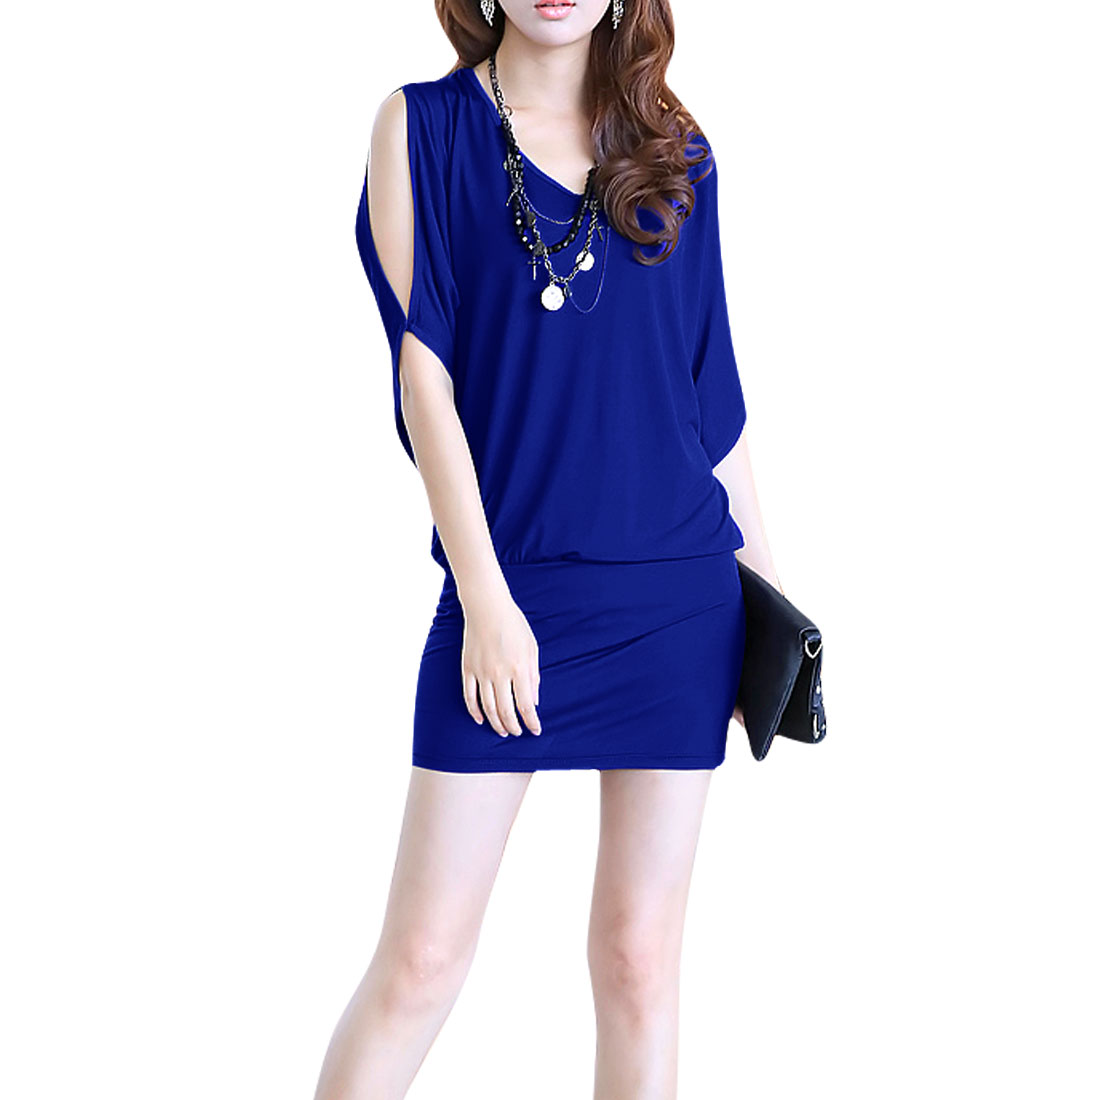 Ladies Half Sleeve Stretchy Dress Royal Blue M